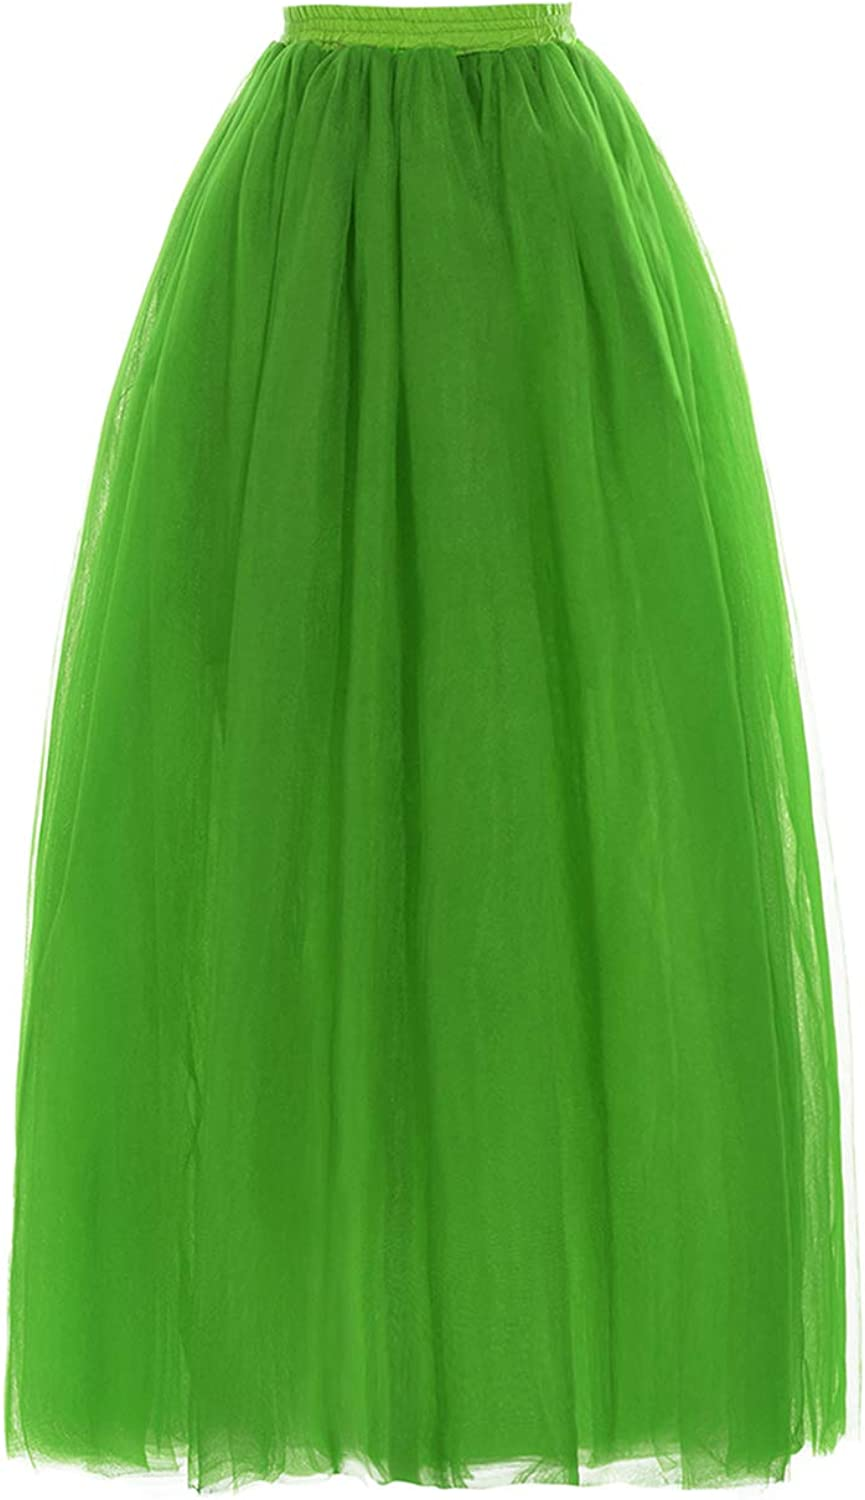 MisShow Ladys Soft Tulle Skirts for Bridesmaid Prom Evening Party Long Slips Pettiskirt Maxi Underskirt 18 Colors